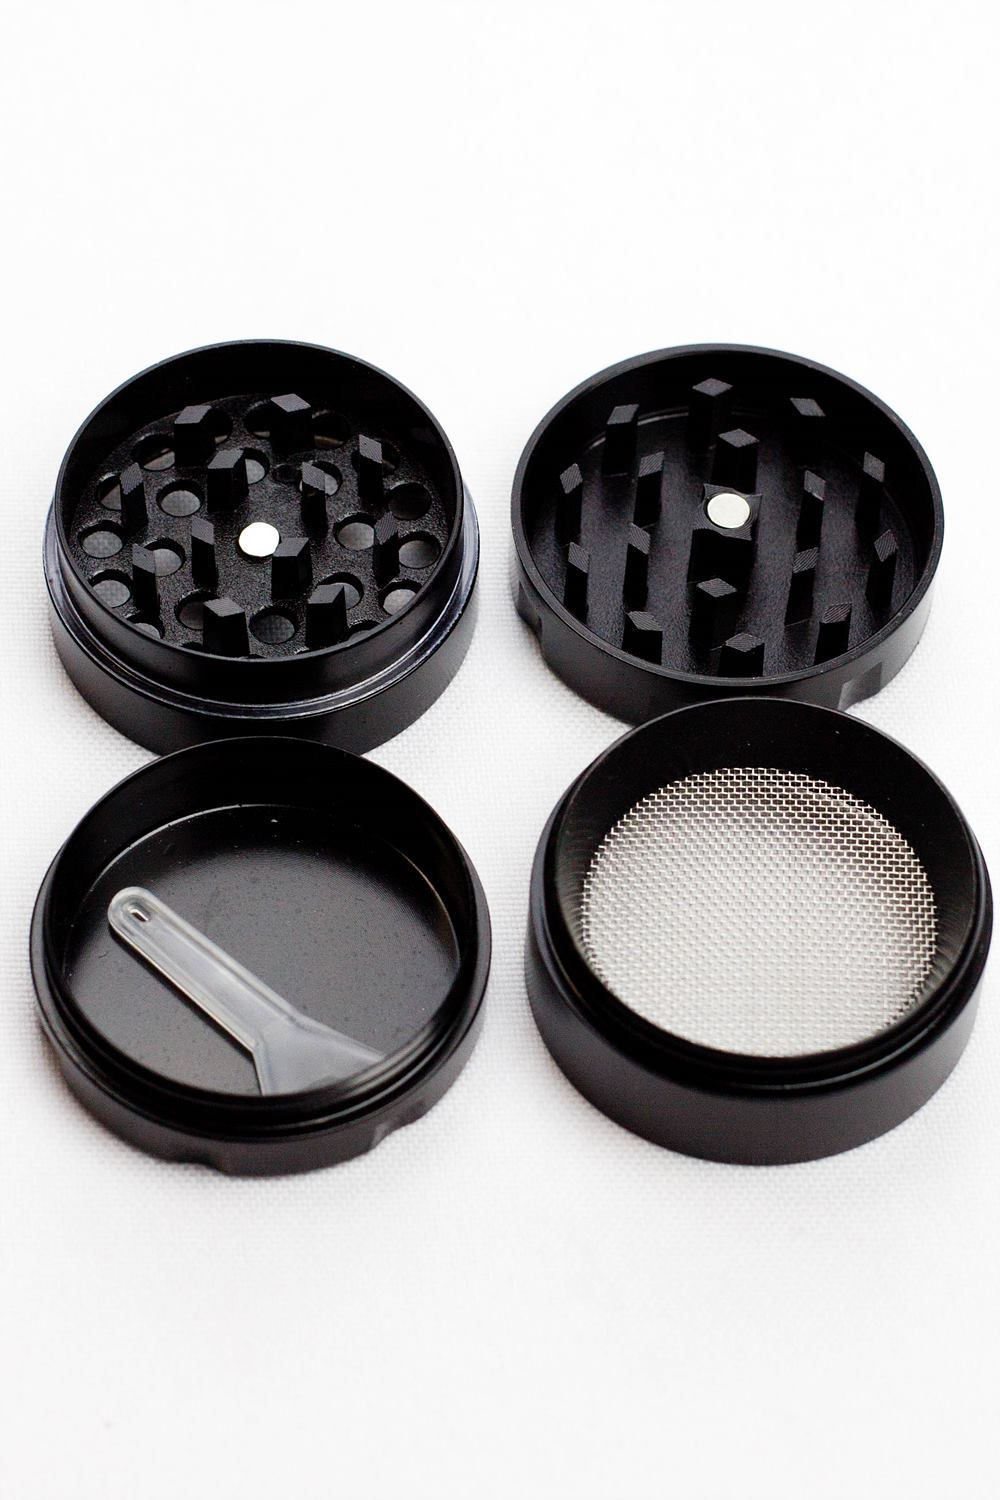 4 parts infyniti small rasta leaf herb grinder - One wholesale Canada